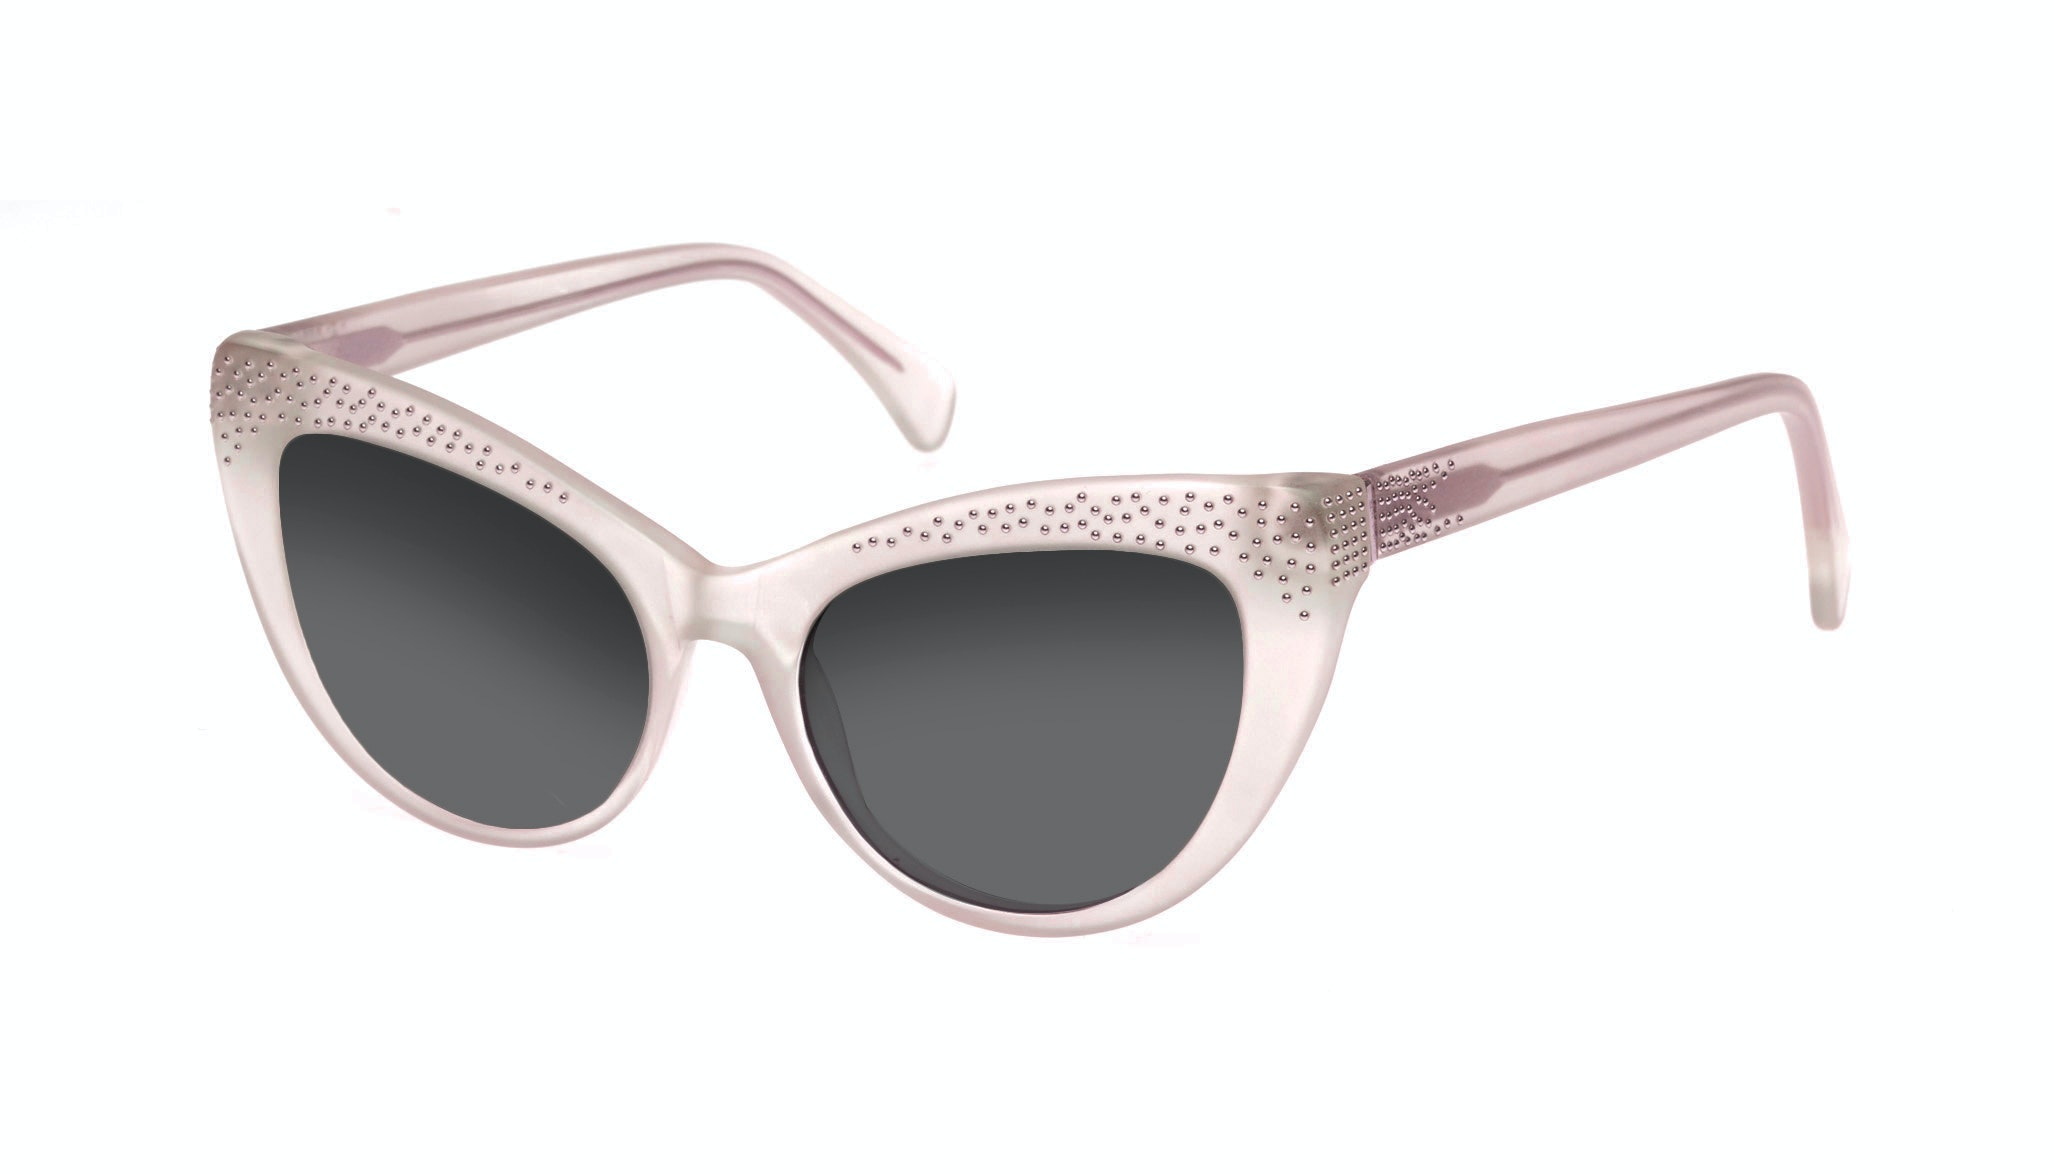 Affordable Fashion Glasses Cat Eye Sunglasses Women Keiko Barbie Pink Tilt